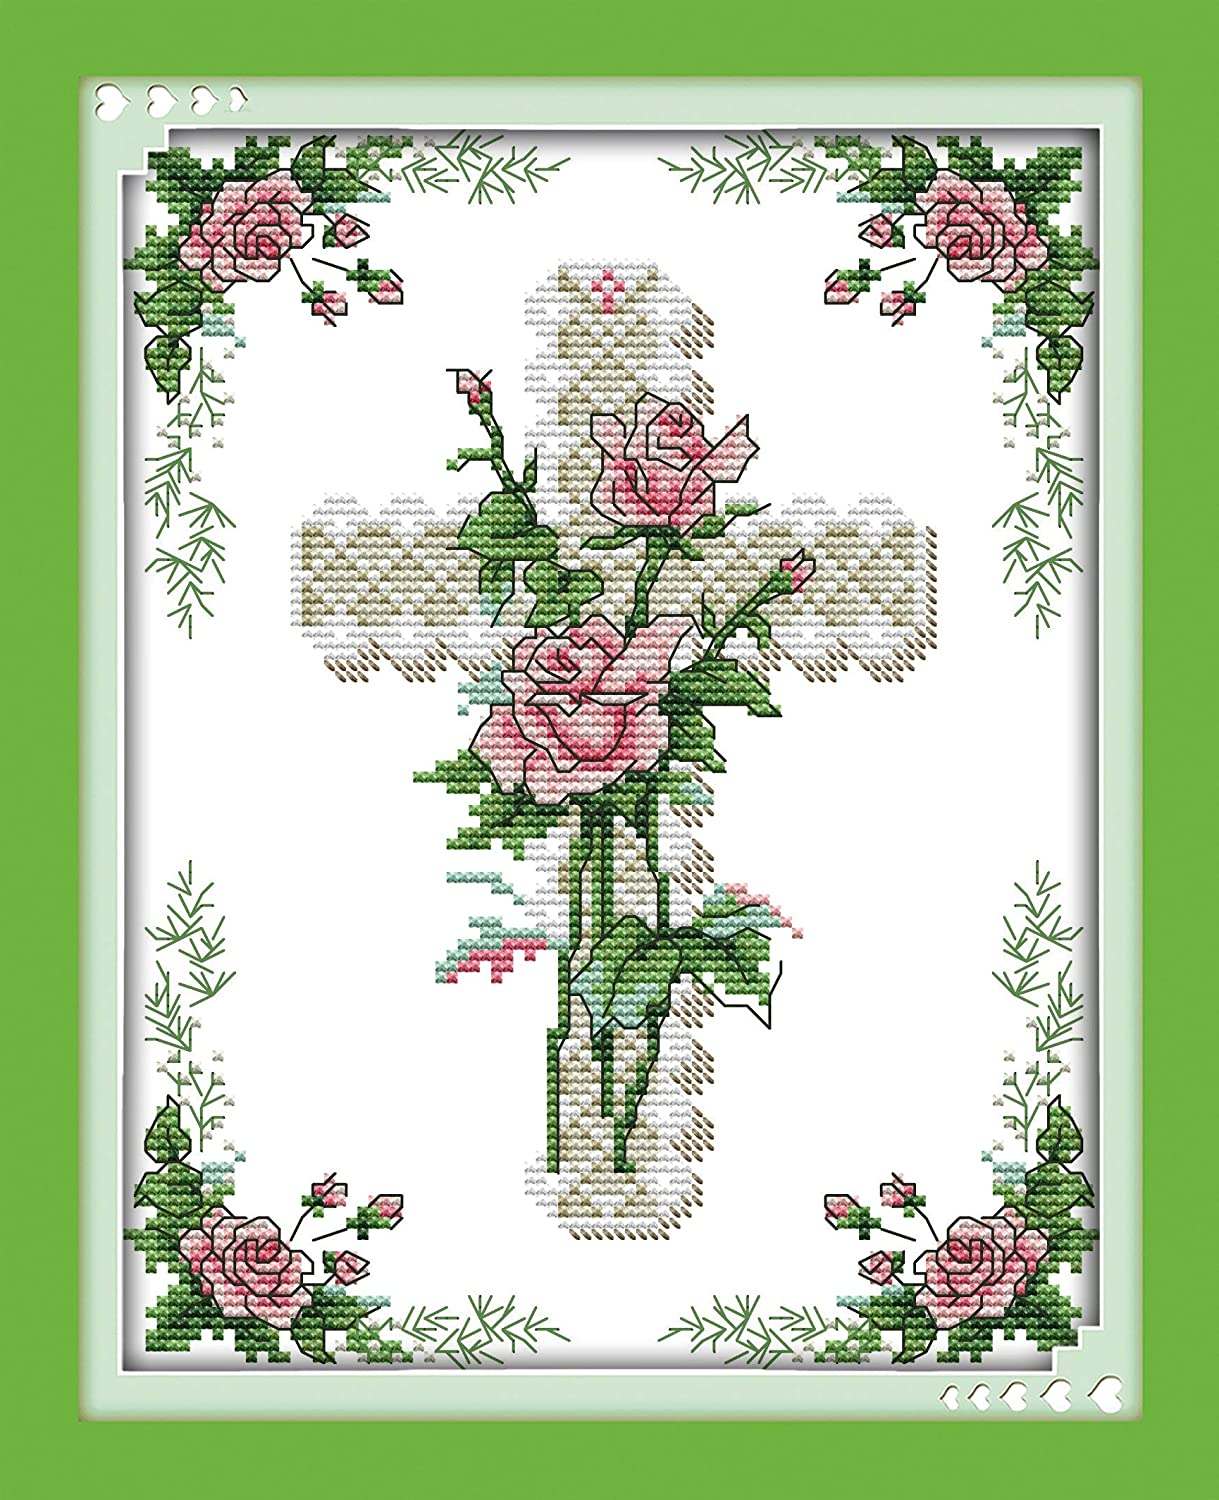 DIY Embroidery Beginners Kits Pre-Printed Floral Pattern Cross Stitch Craft Hot